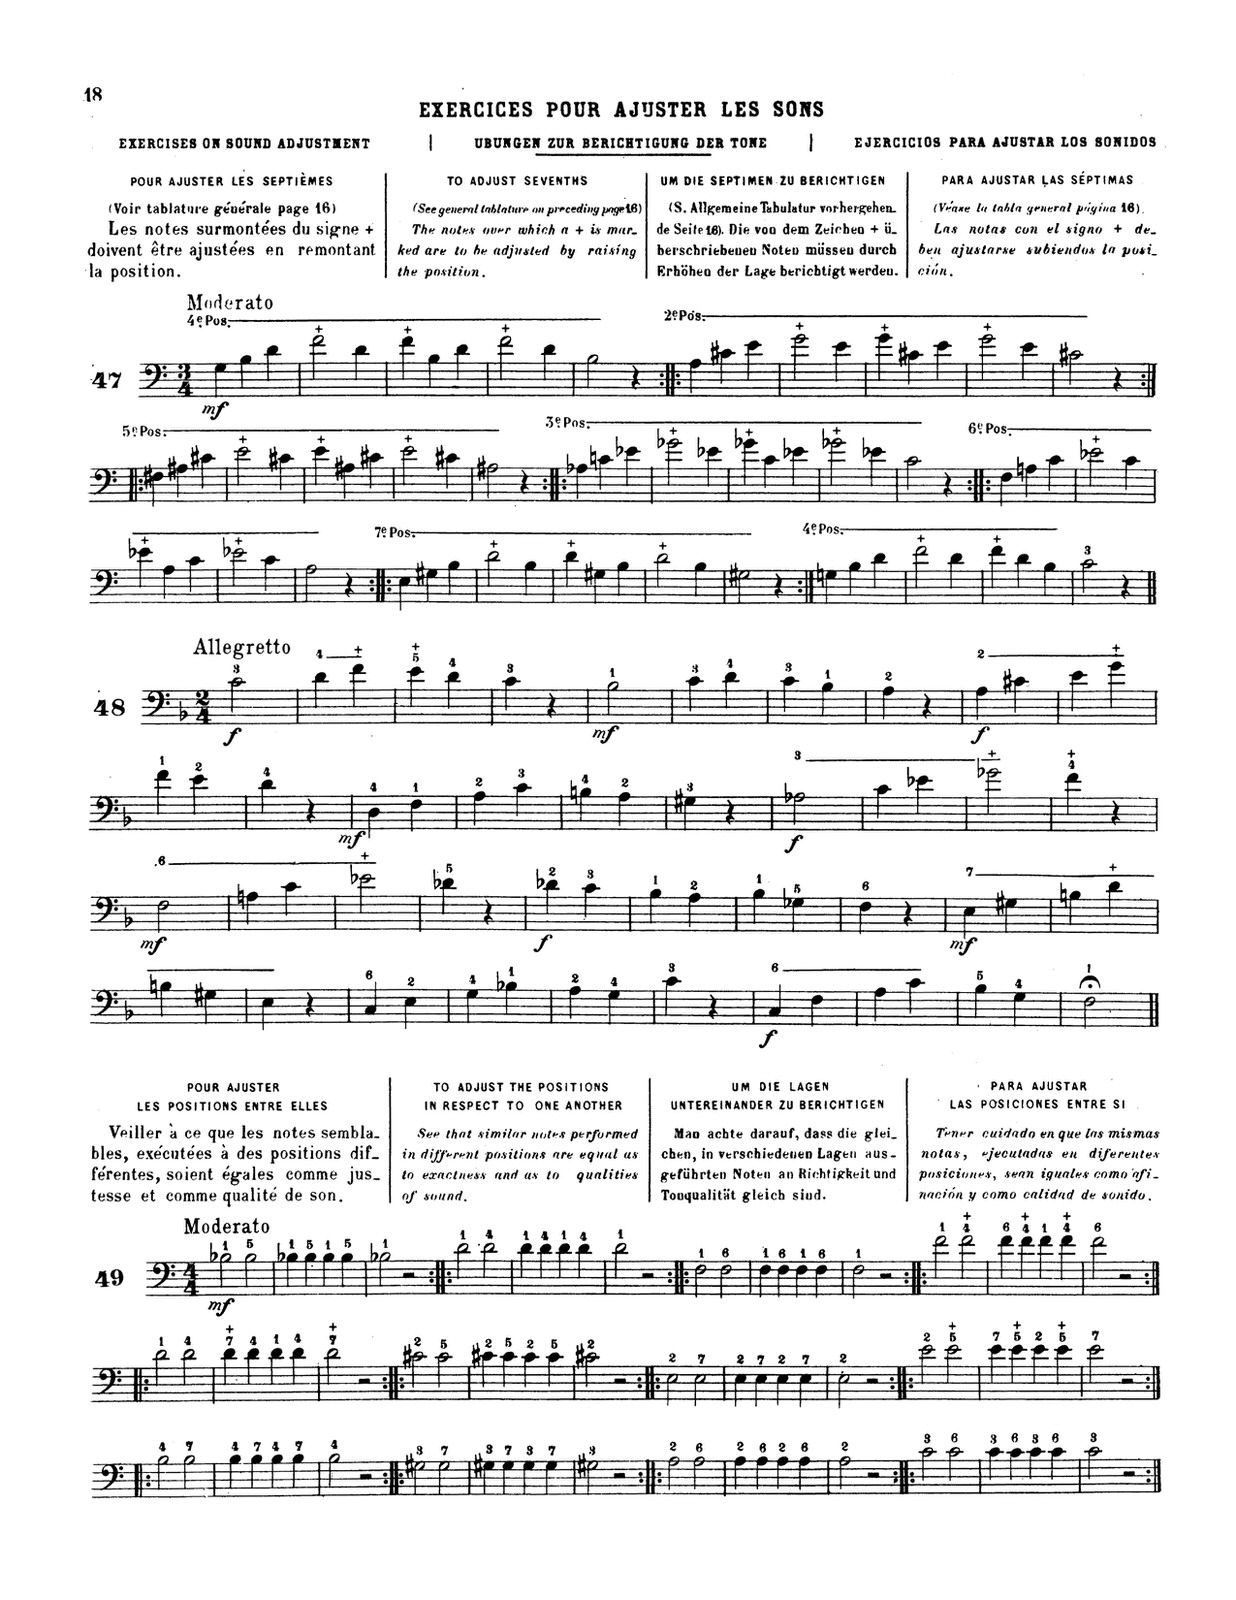 Lafosse, Andre, Complete Method of Slide Trombone 5